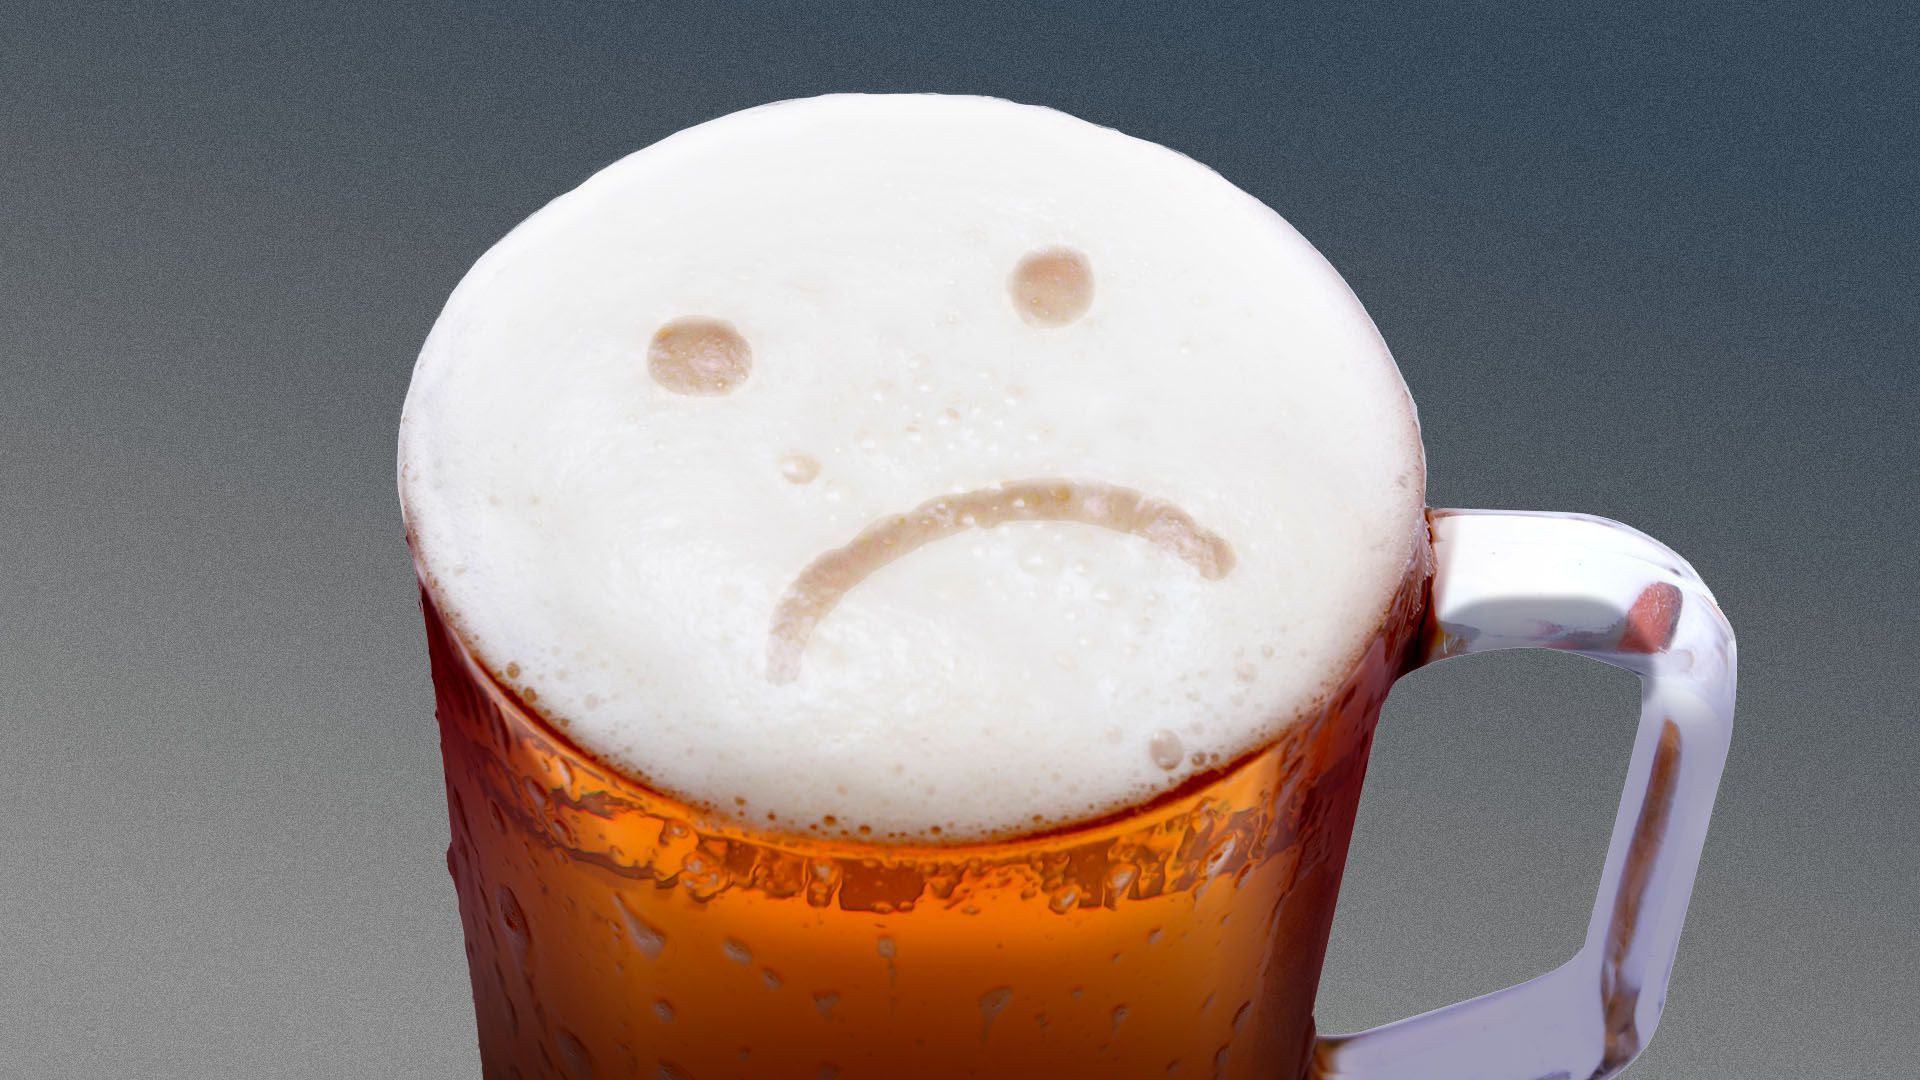 Illustration of a mug of beer, with a sad face in the foam